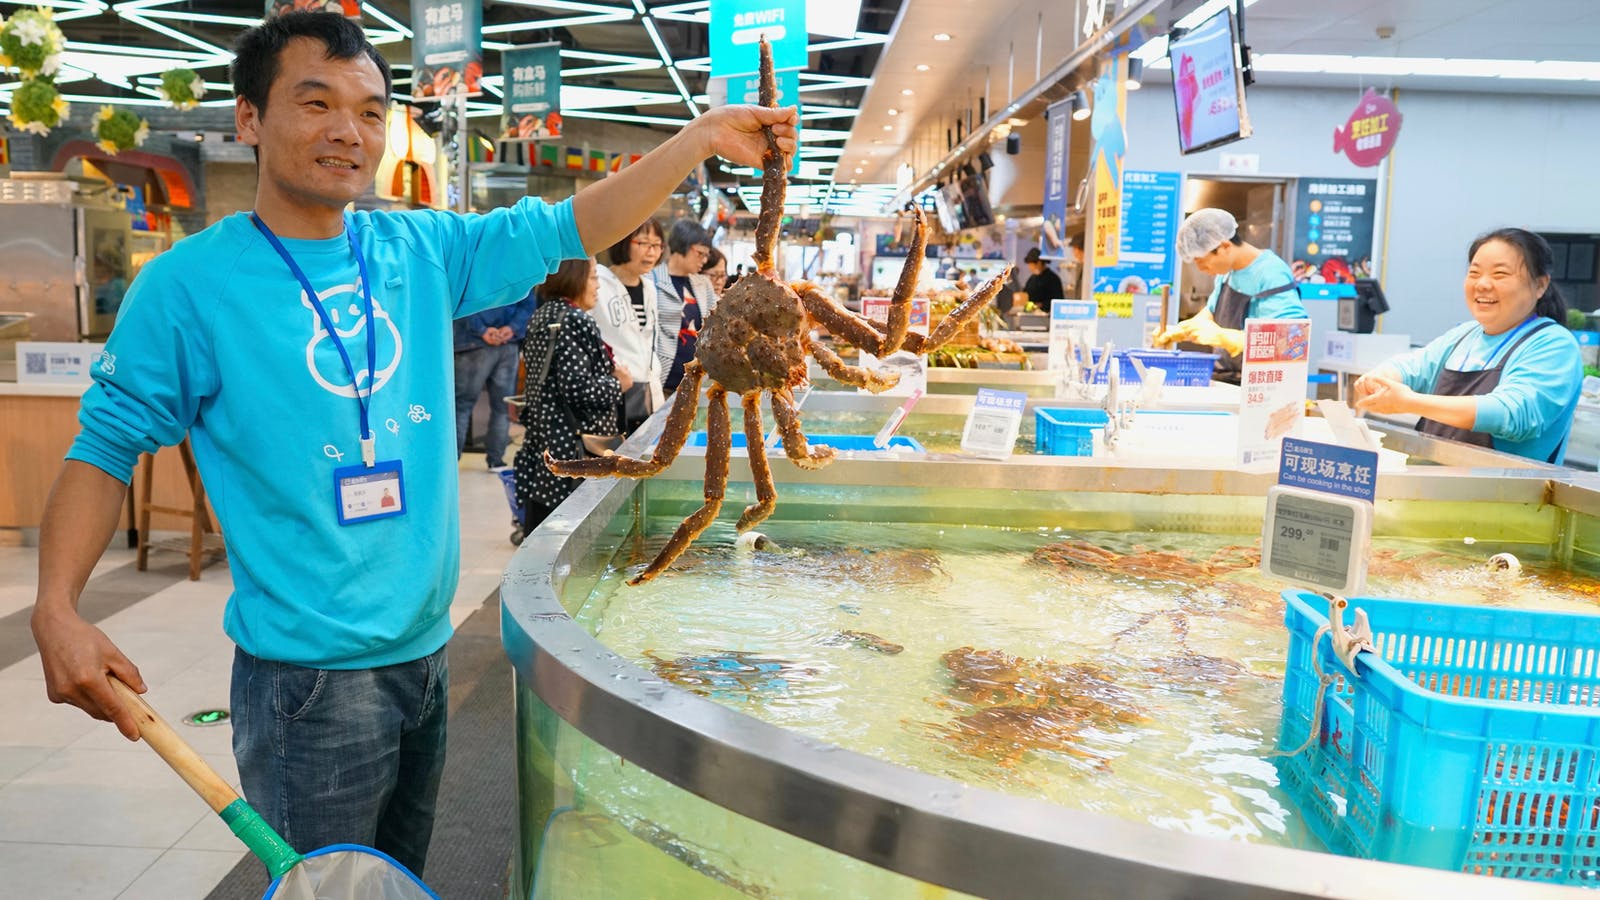 The seafood section of Alibaba's Hema grocery store in Shanghai. Photo by Juro Osawa.